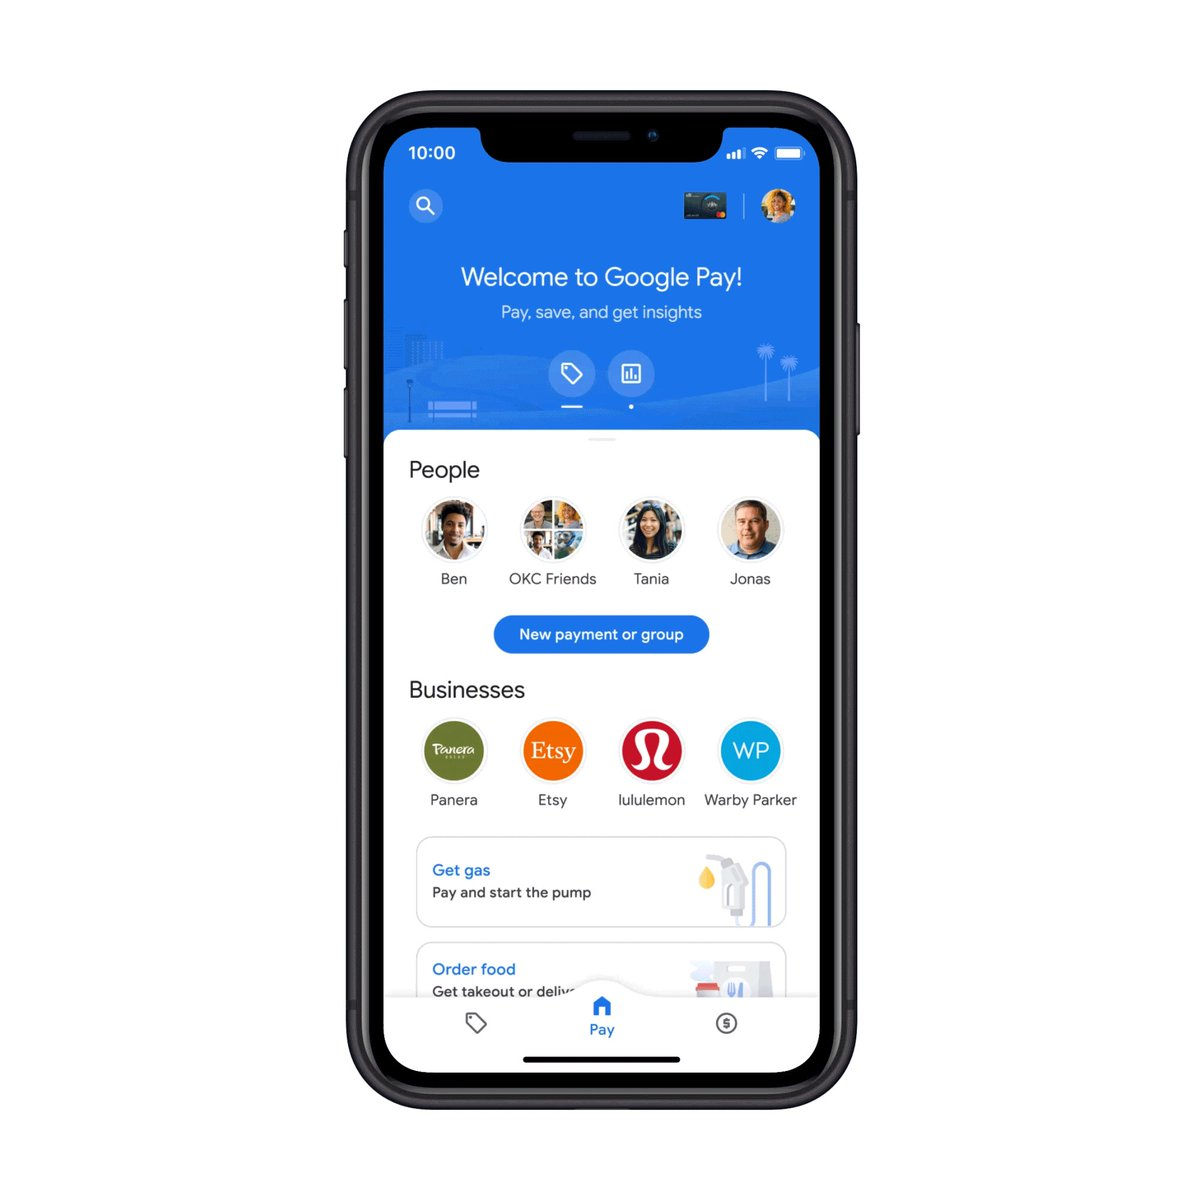 Pay for 🥪  & ⛽ , explore your offers, then get insights on your spending. 🔎  Happy swiping through the new #GooglePay!